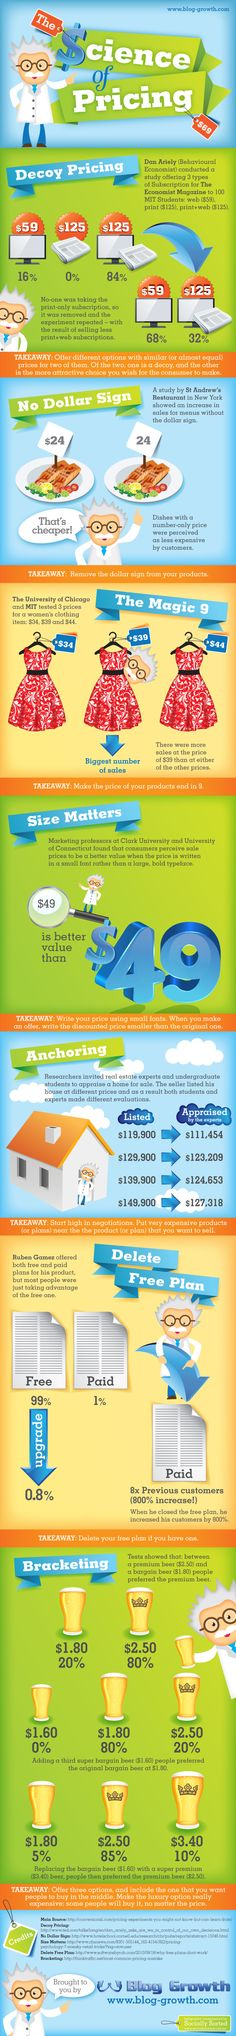 Increase sales using the psychology of prices #infographic www.socialmediamamma.com